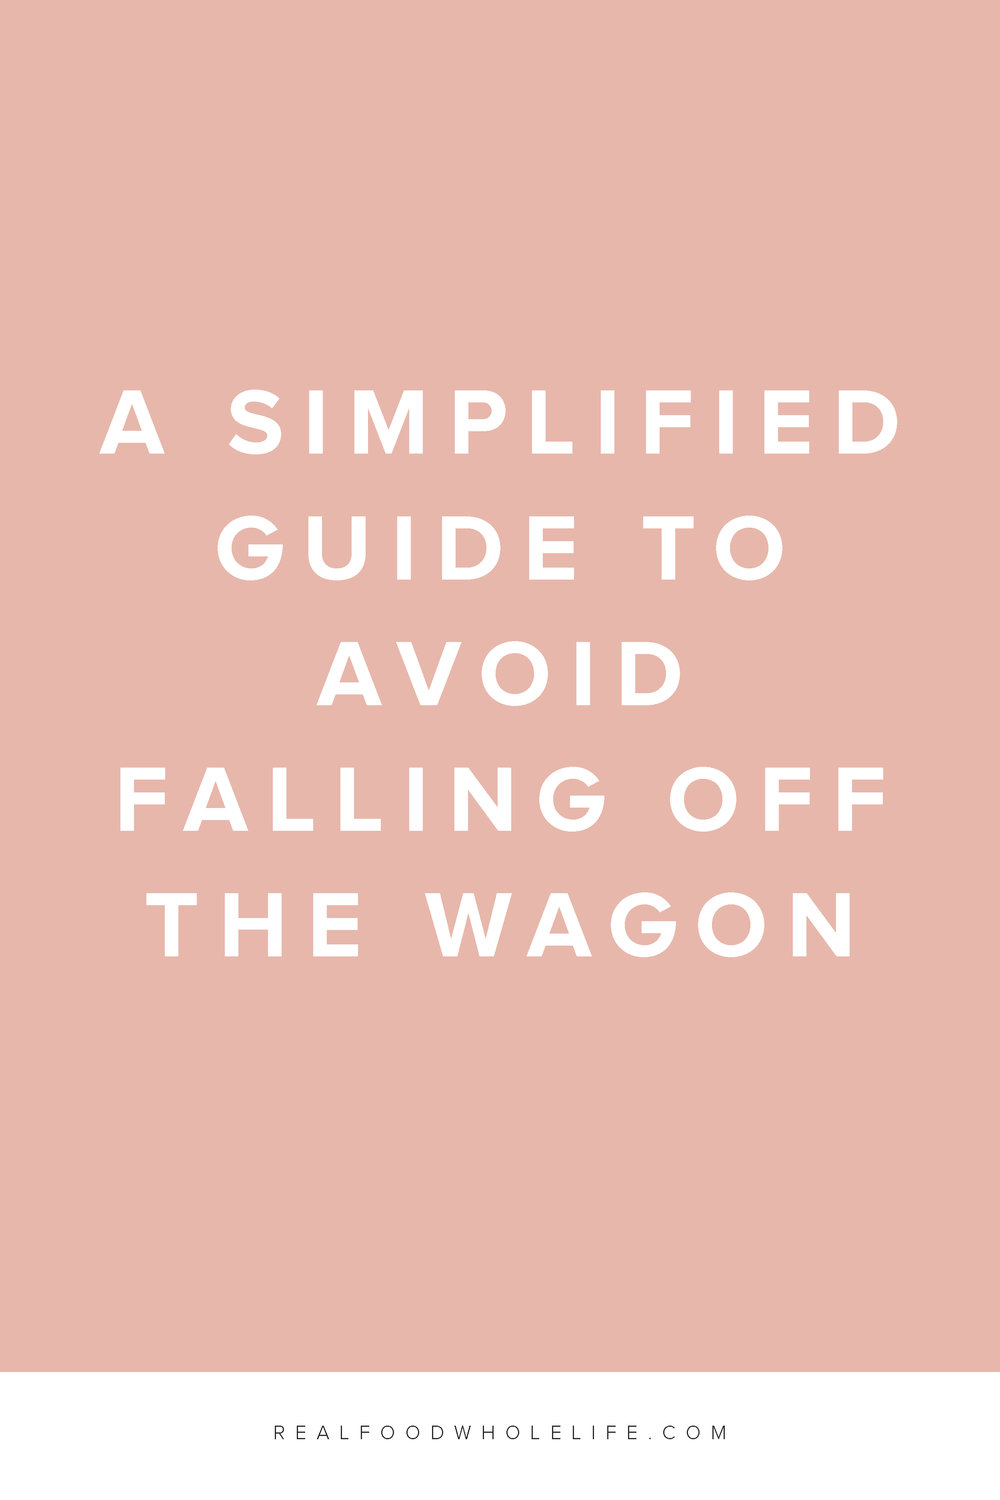 A simplified guide to avoid falling off the wellness wagon. Read on for more on how to ditch the wagon and practice gentle. #feelgoodeffect #realfoodwholelife #wellness #healthy #gentleisthenewperfect #practicegentle